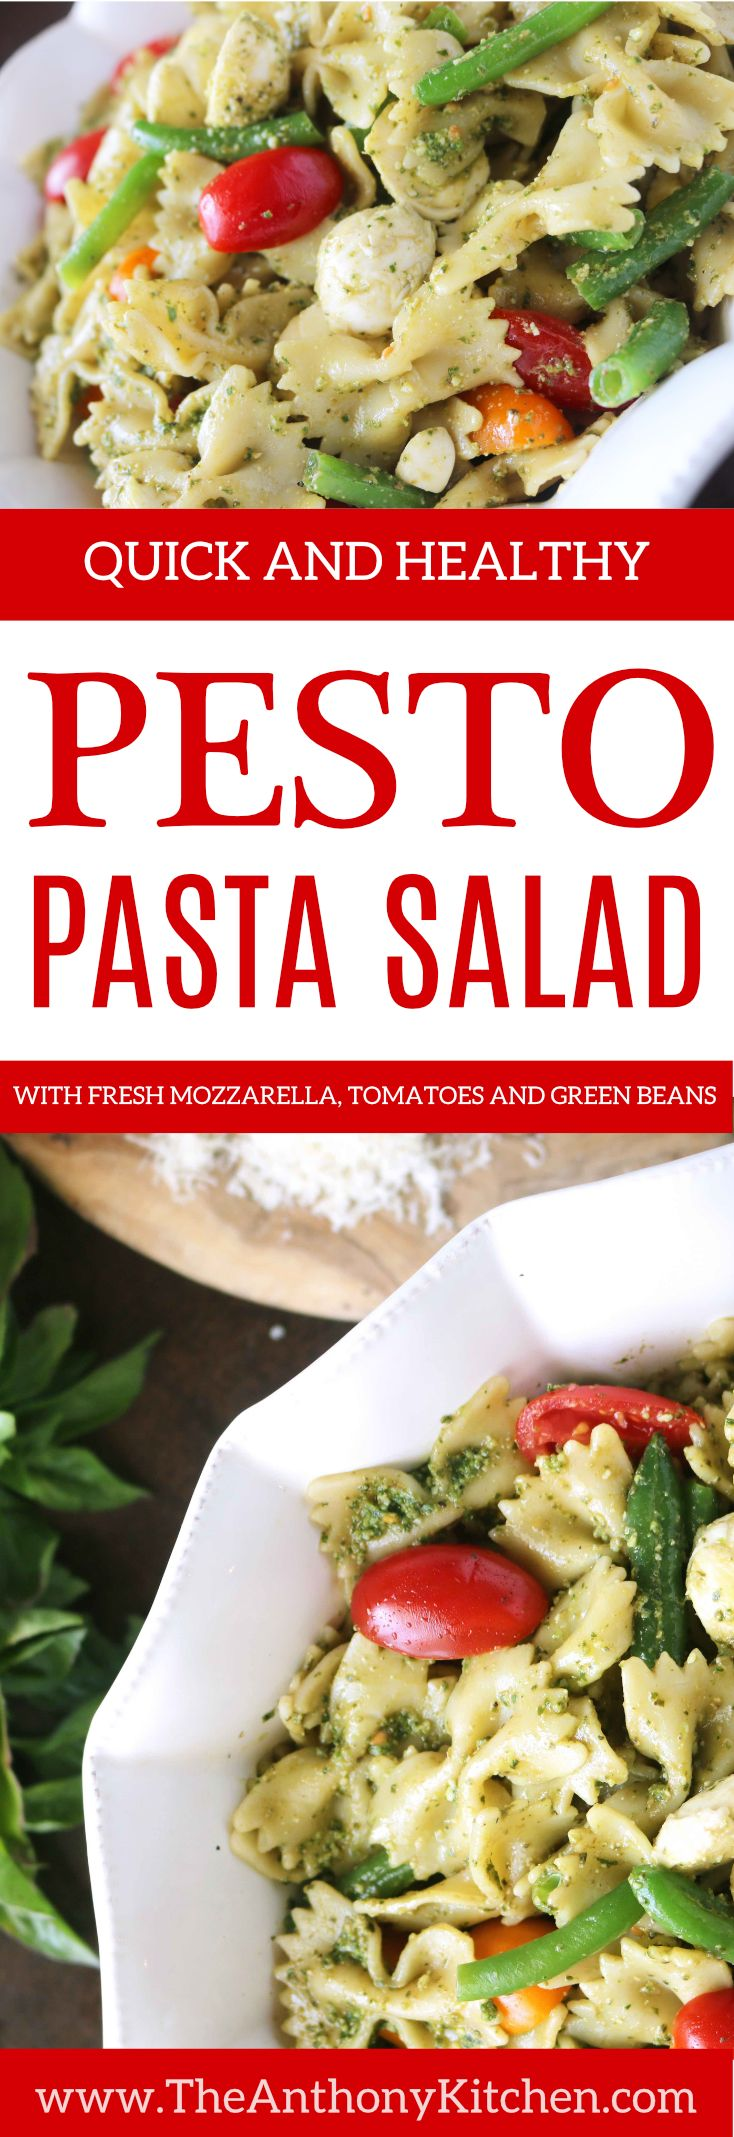 Healthy Pasta Salad with Basil Pesto | A creamy pesto pasta salad, featuring fresh and healthy ingredients like grape tomatoes and green beans | #pestosauce #bestbasilpesto #pestopastasalad #basilpesto #healthypastarecipe #makeaheadlunchrecipe